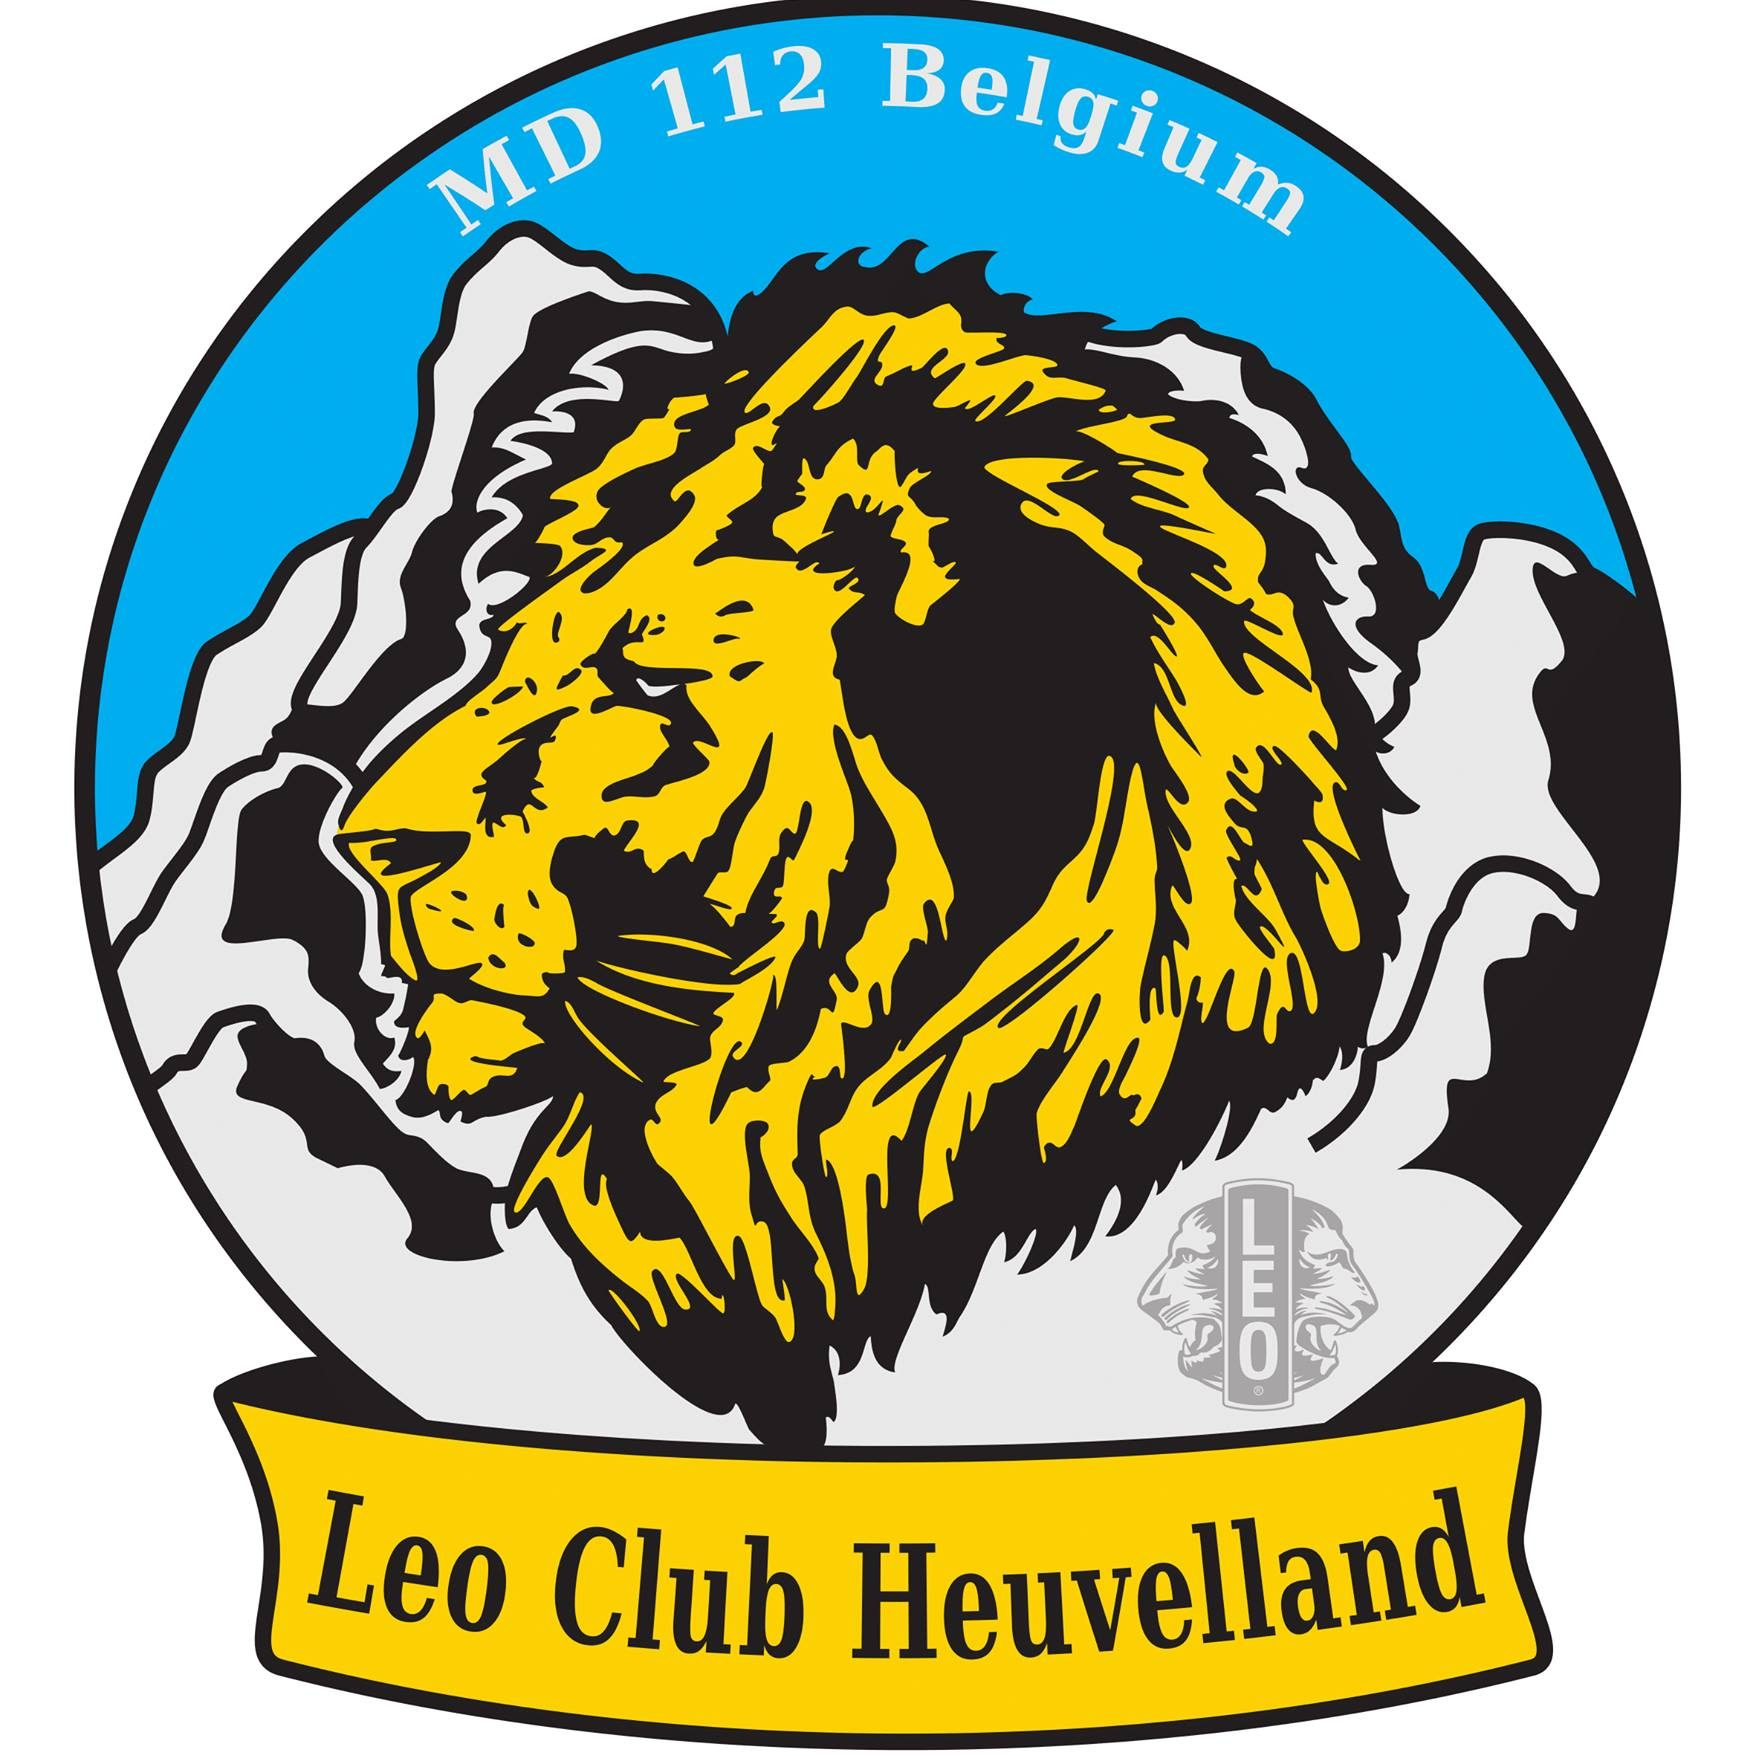 LEO Club Heuvelland